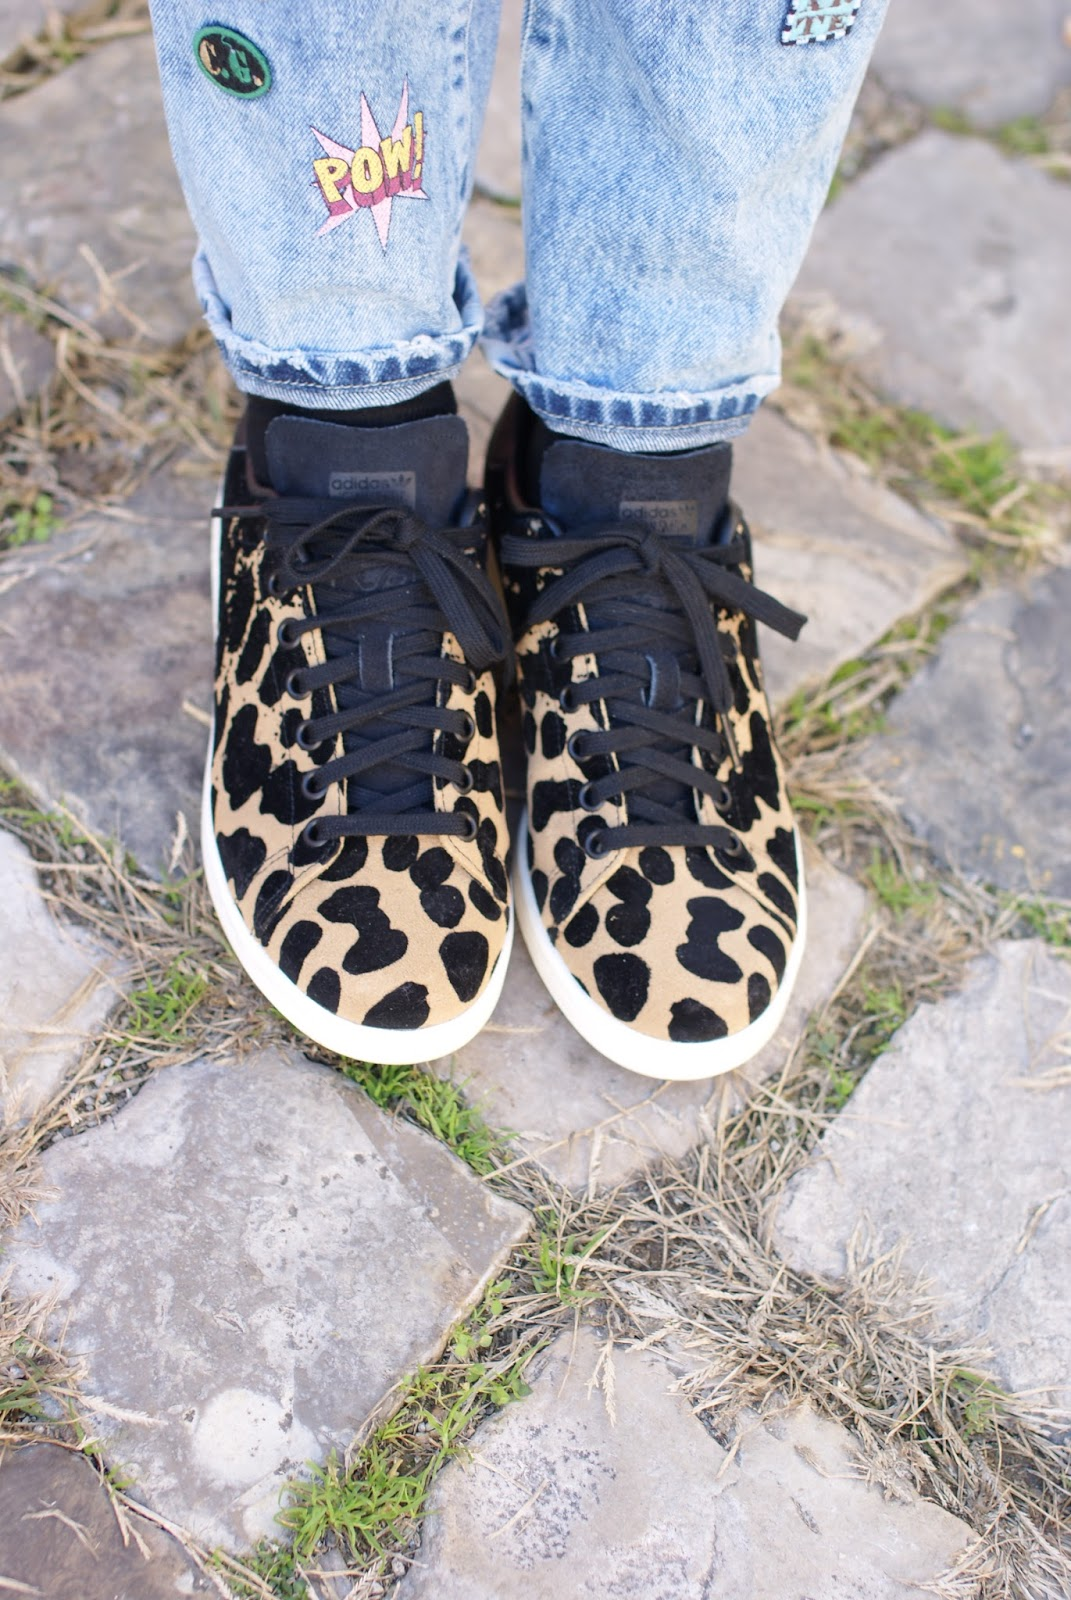 Adidas Originals Stan Smith cardboard sneakers leopard on Fashion and Cookies fashion blog, fashion blogger style